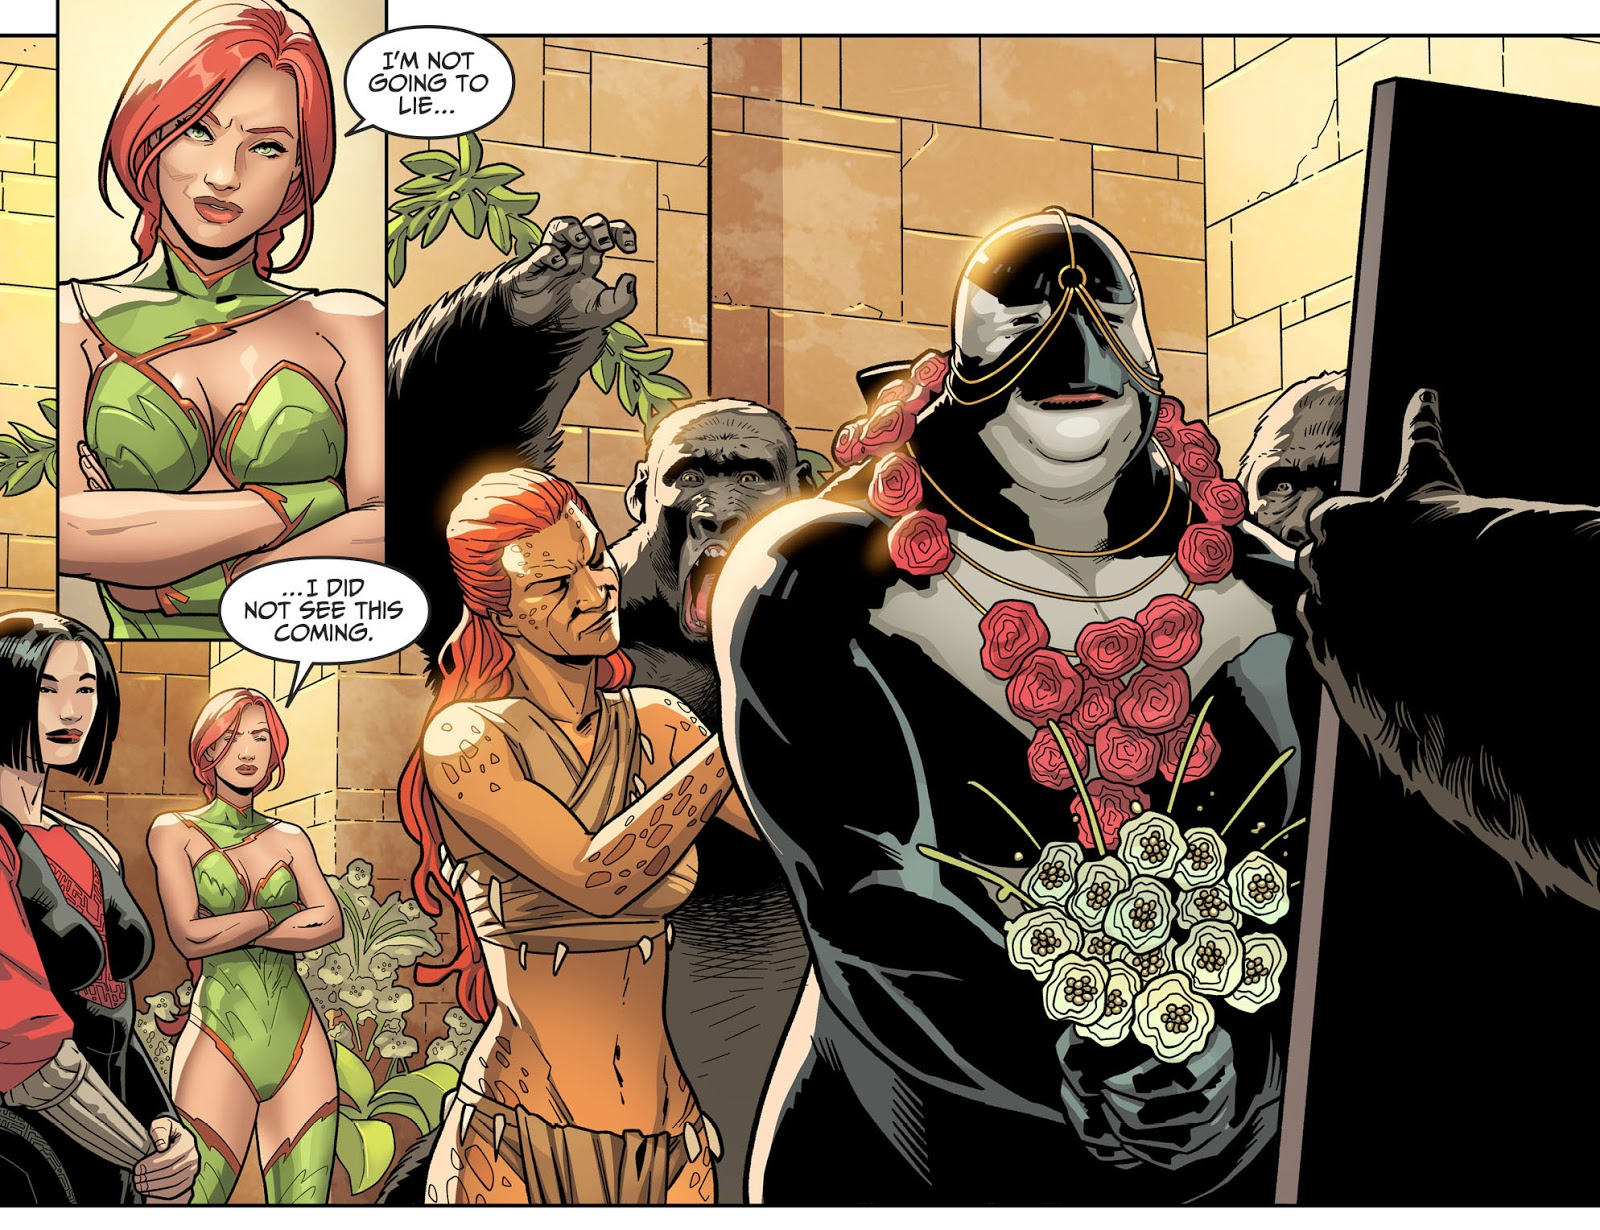 Killer Croc And Orca's Wedding (Injustice II)